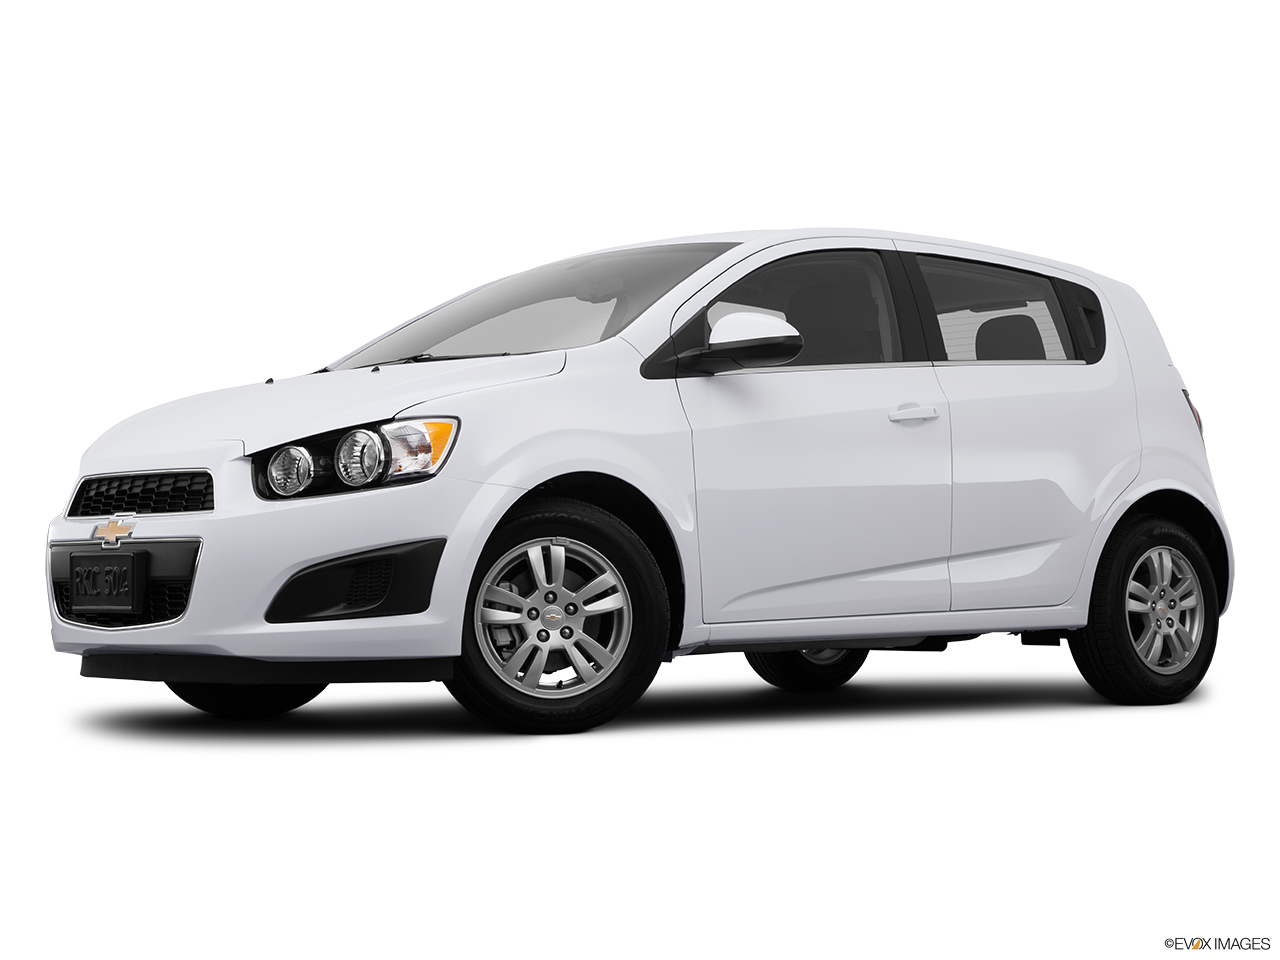 2014 chevrolet sonic 5dr hatchback manual lt. Black Bedroom Furniture Sets. Home Design Ideas